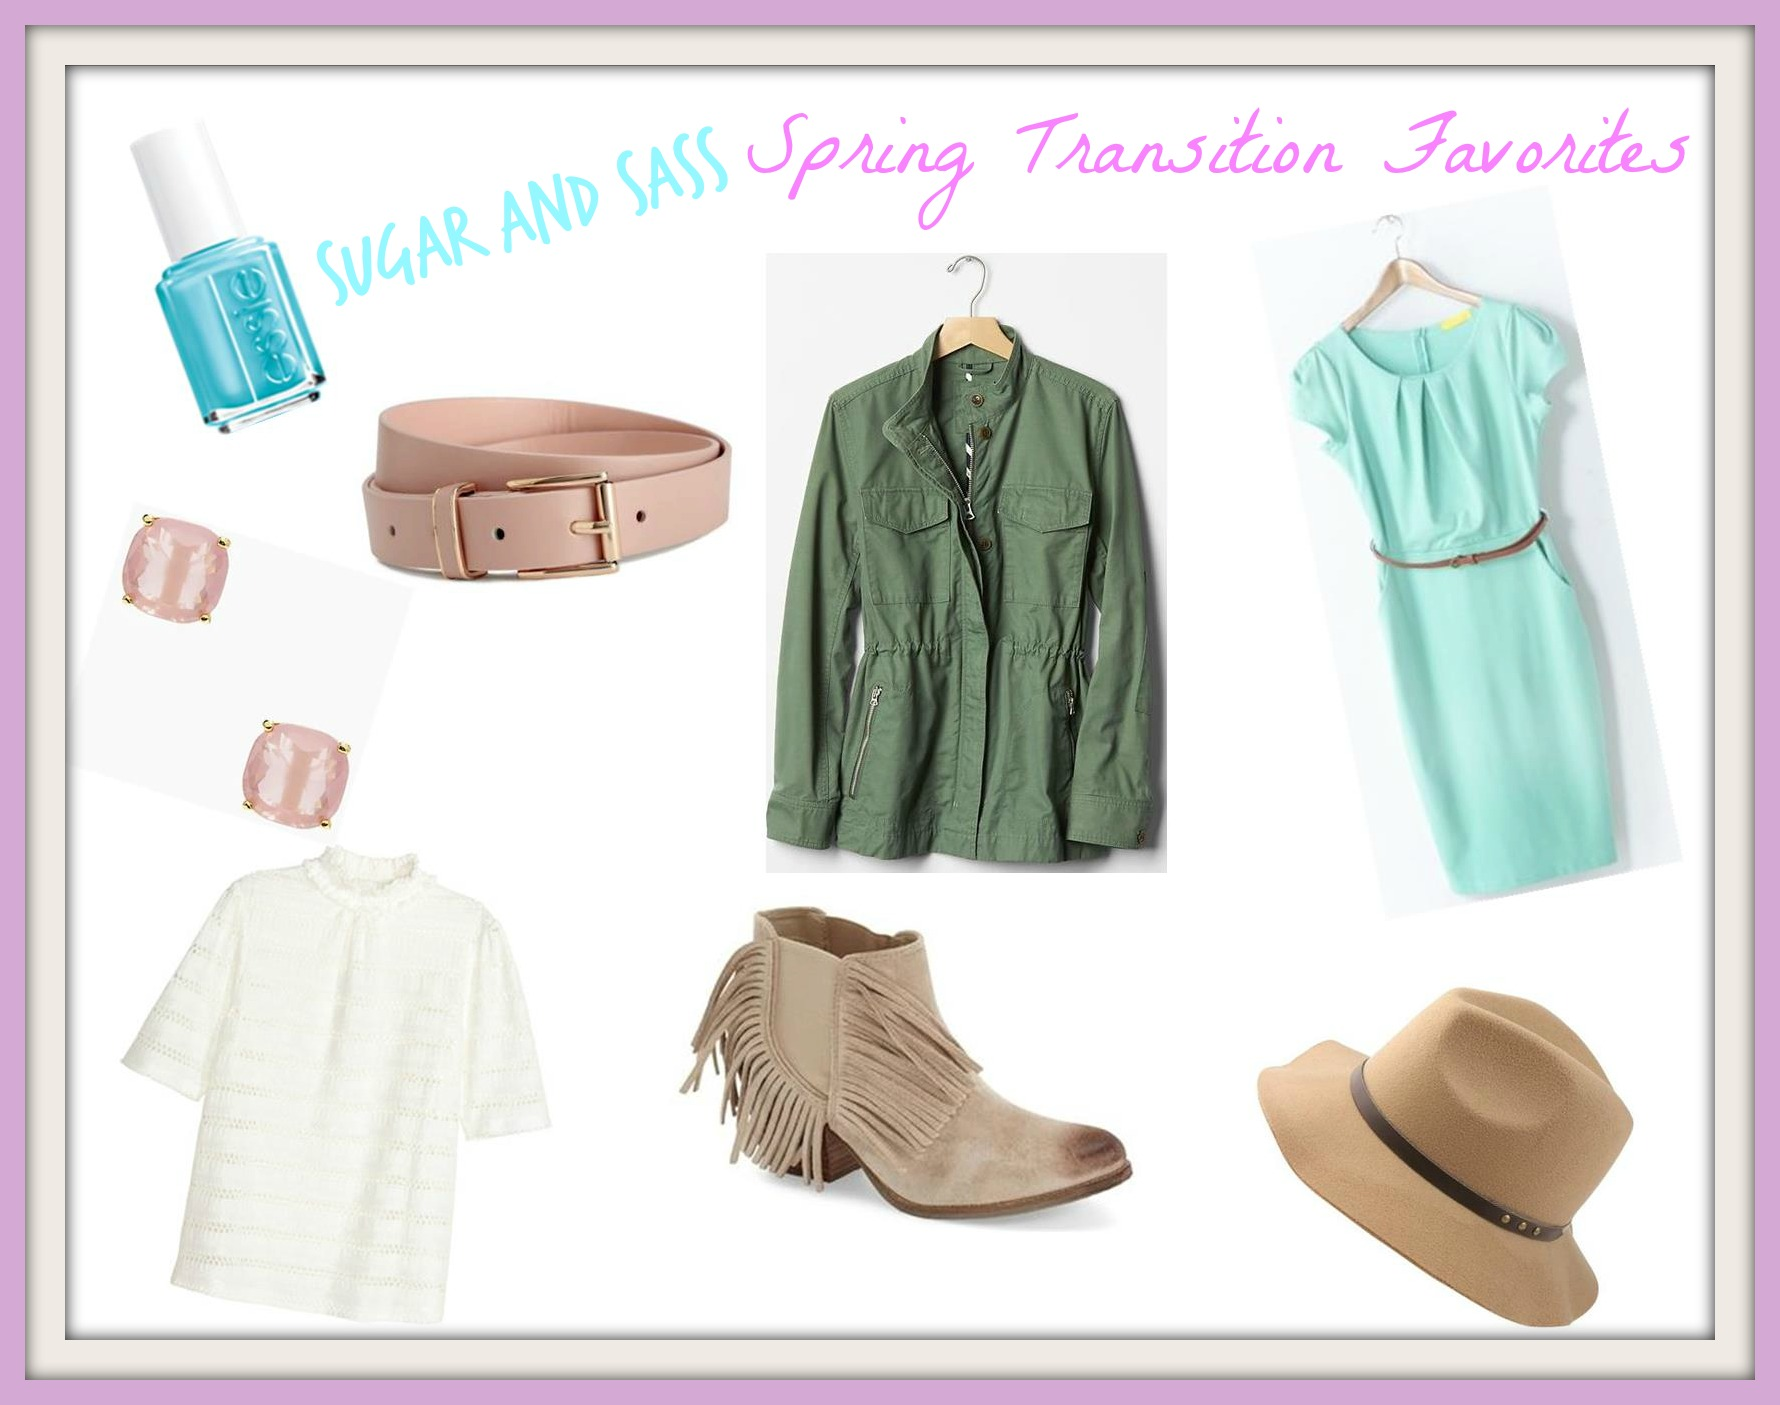 sugar and sass spring transition favorites